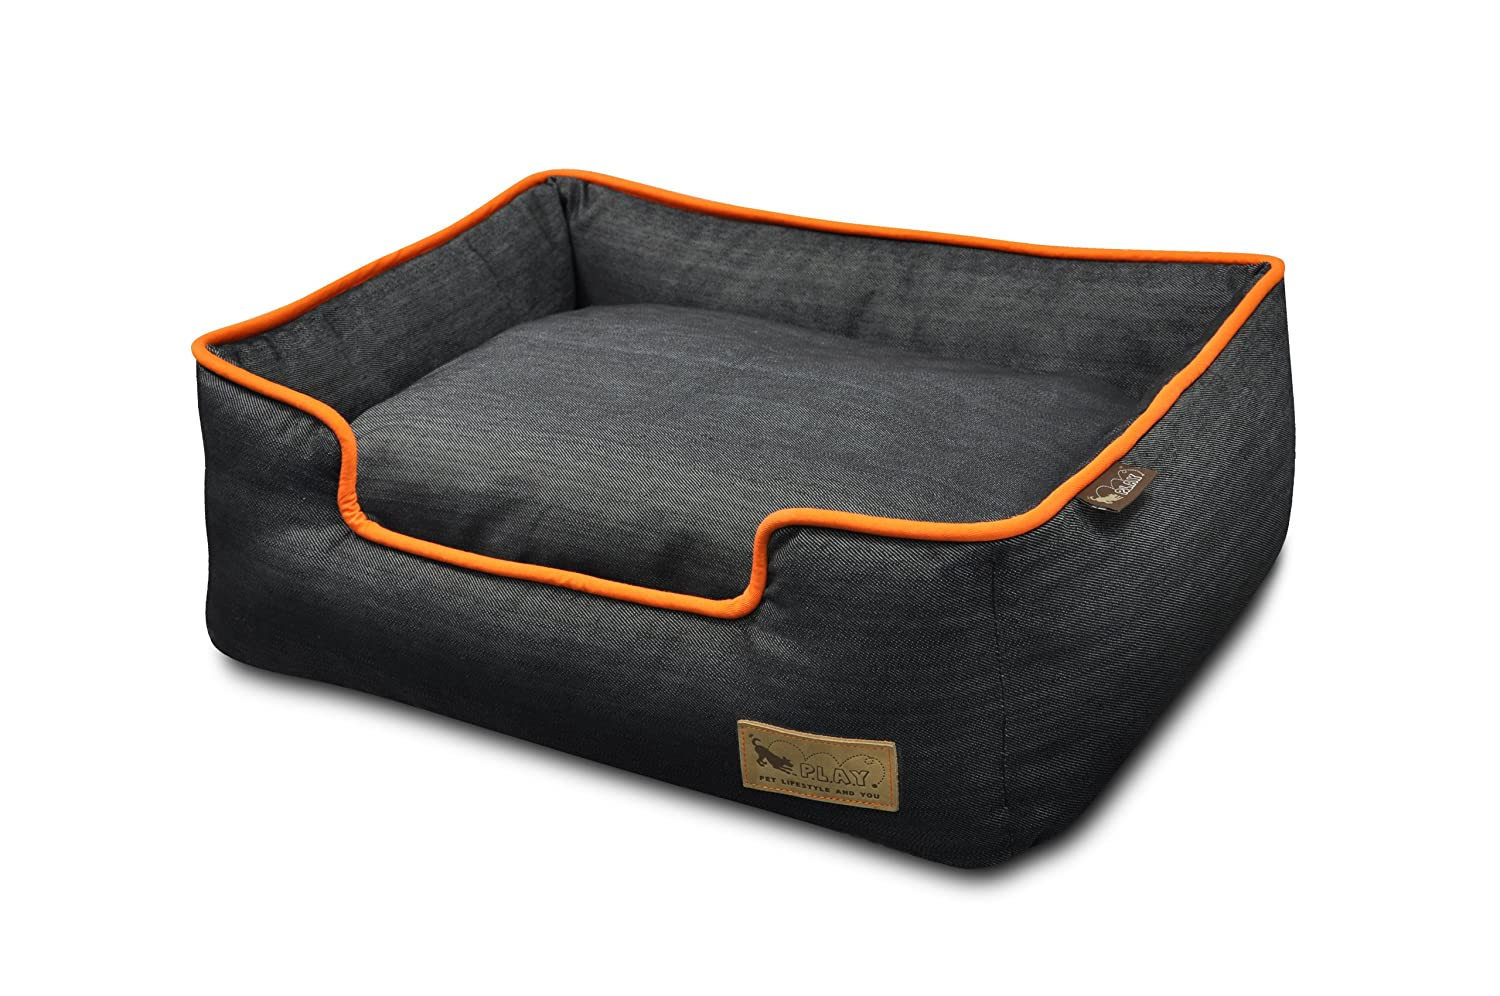 orange  Denim XLargeP.L.A.Y. (Pet Lifestyle And You) Lounge Bed  Denim  Brown  M